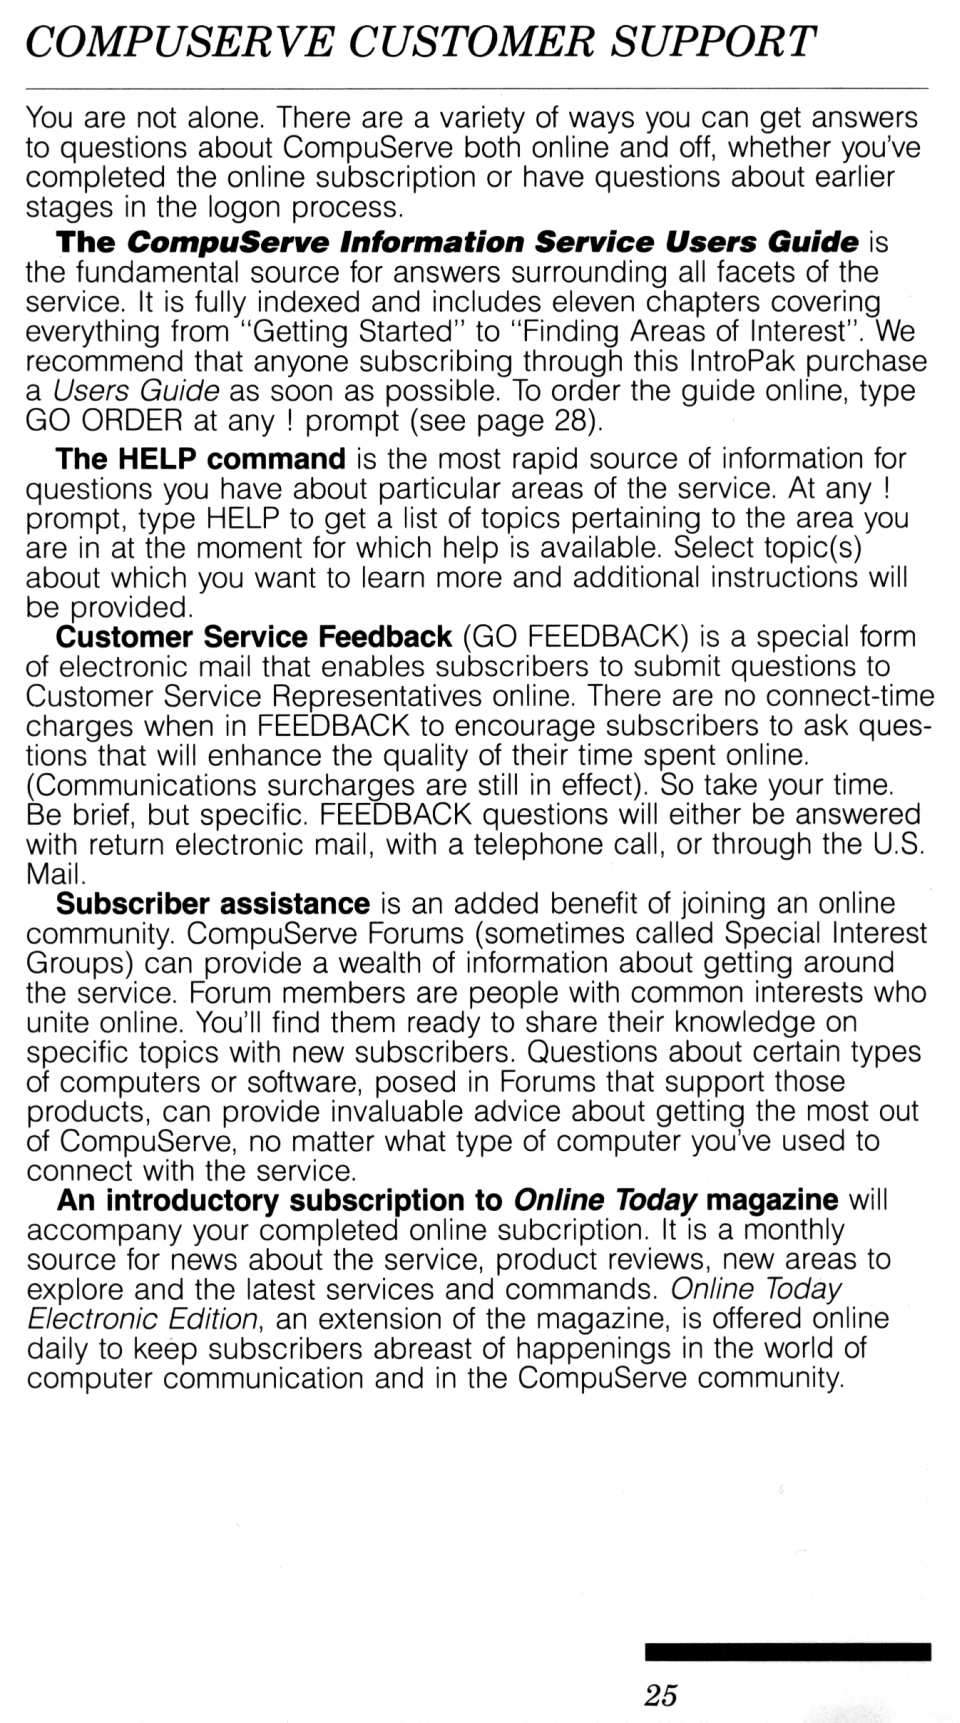 [CompuServe IntroPak page 25/44  CompuServe Customer Support (1/2)]